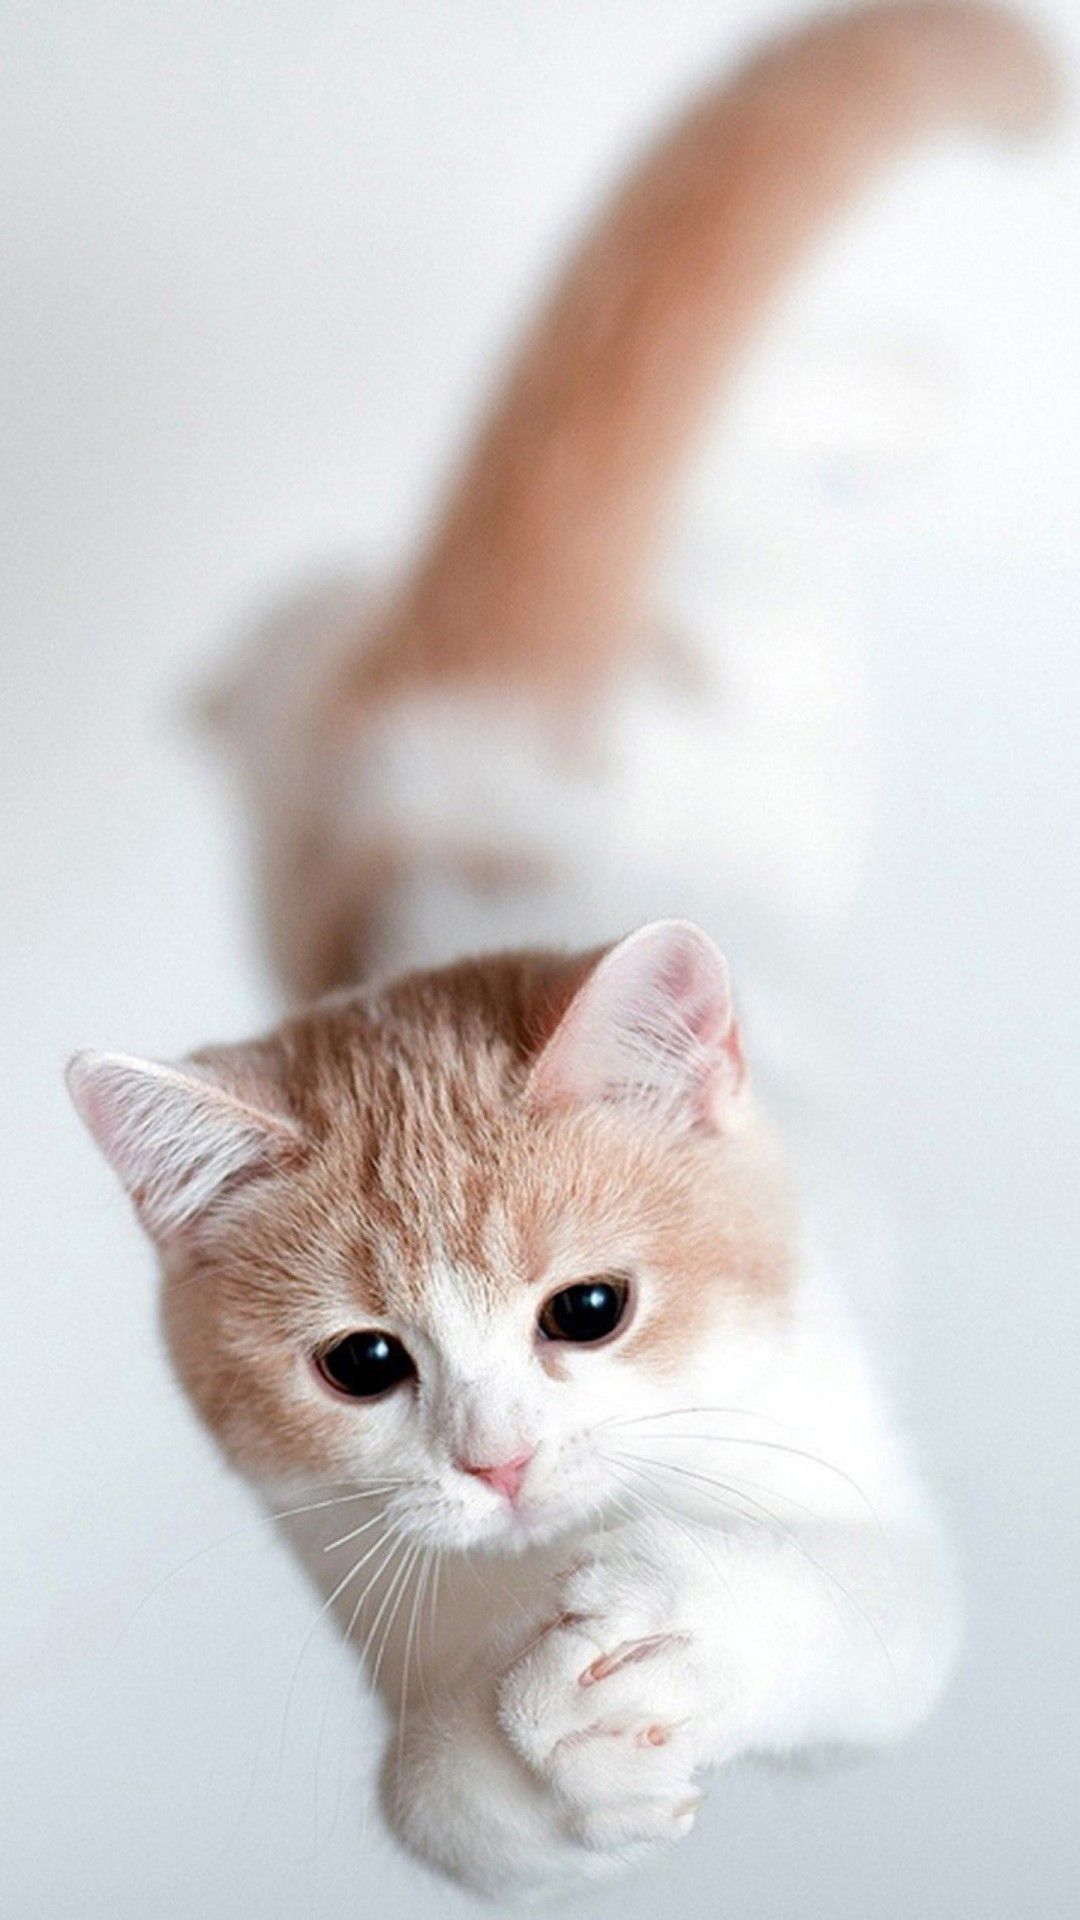 All You Have Ever Wanted To Know About Dogs Cats Cute Cute cat 1080x1920